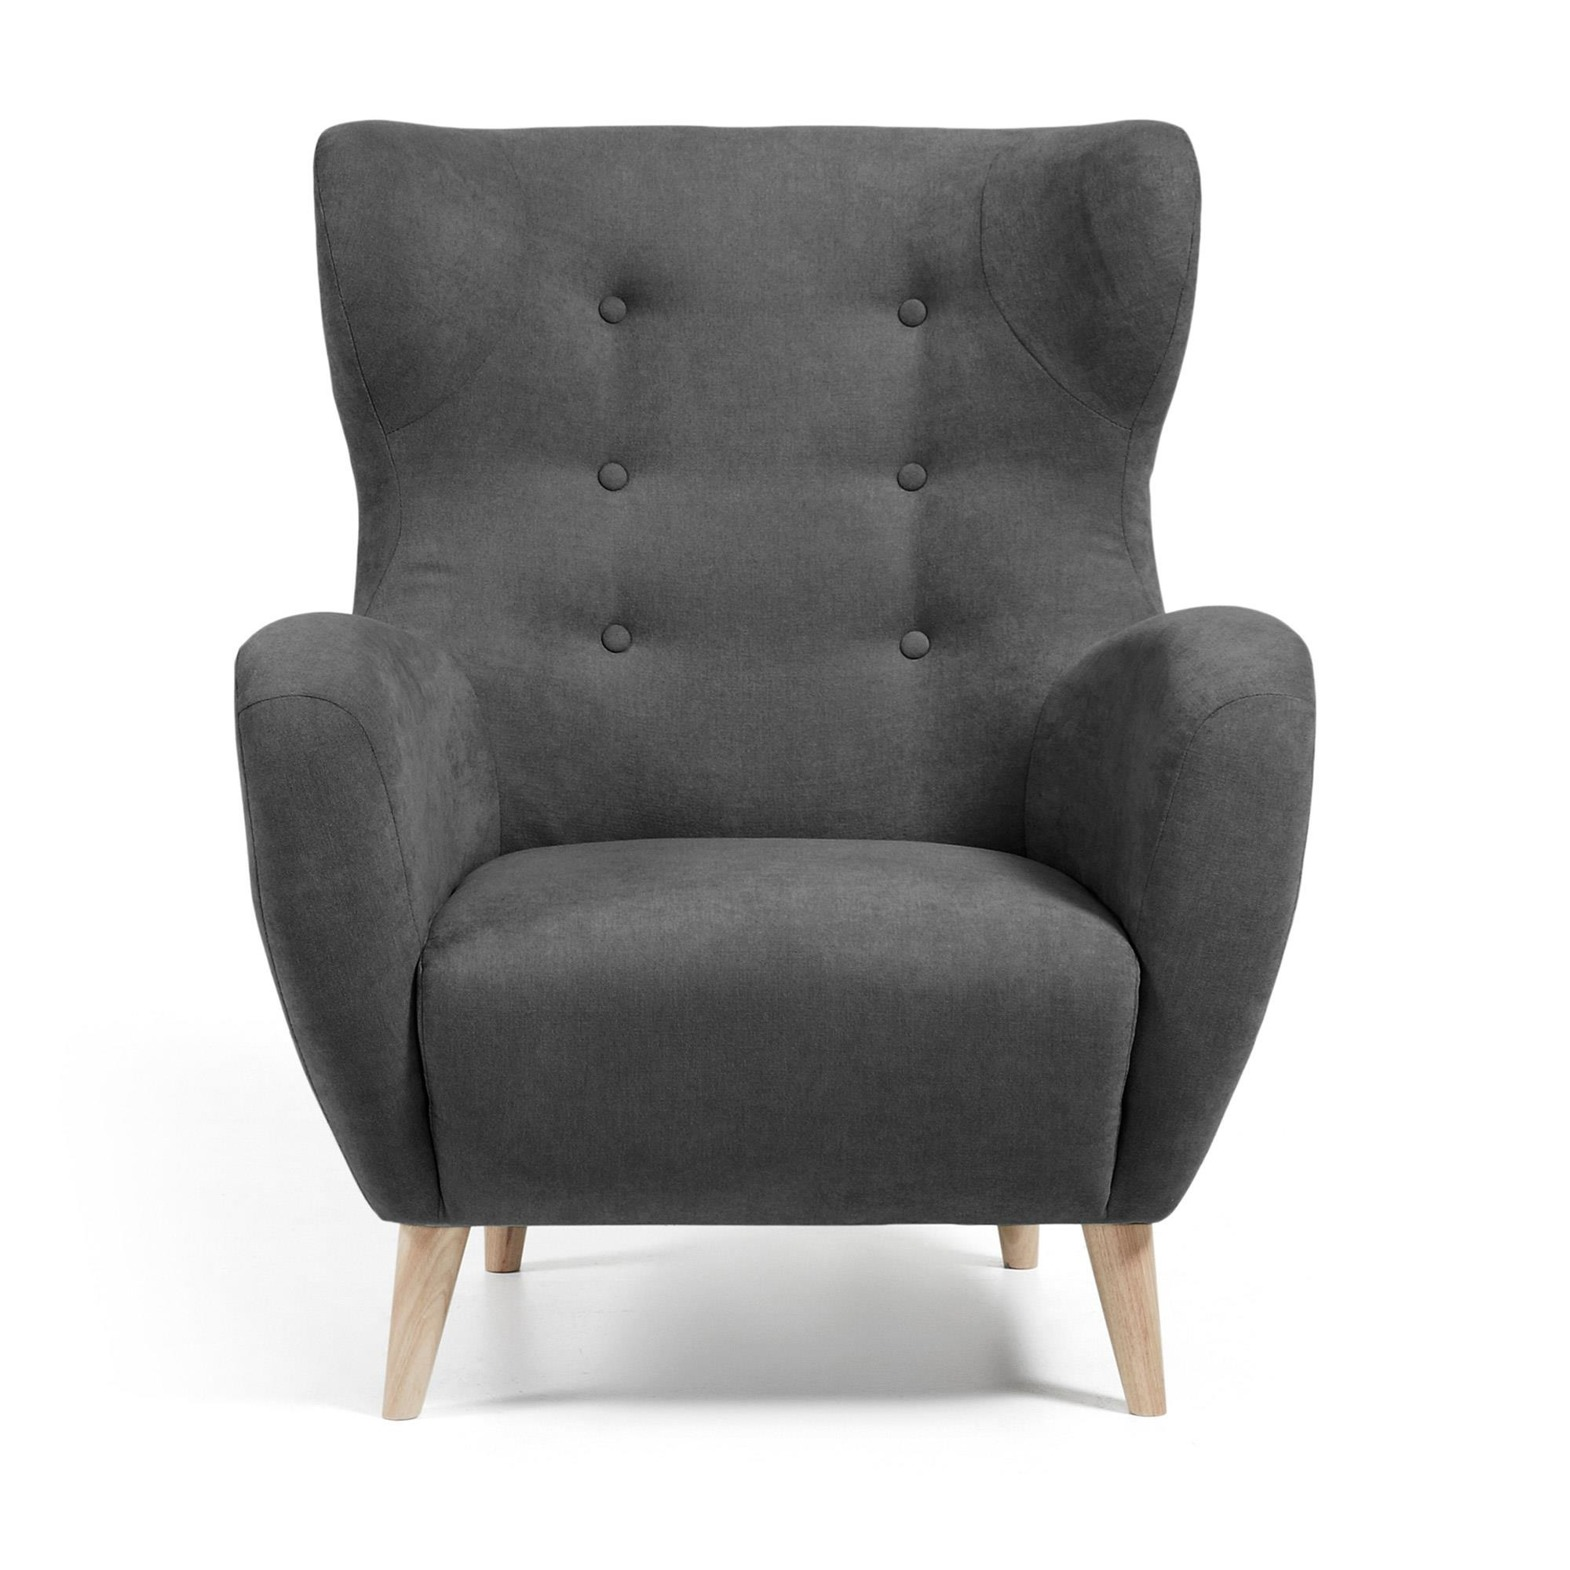 LaForma :: PASSO Armchair natural wood, fabric dark grey